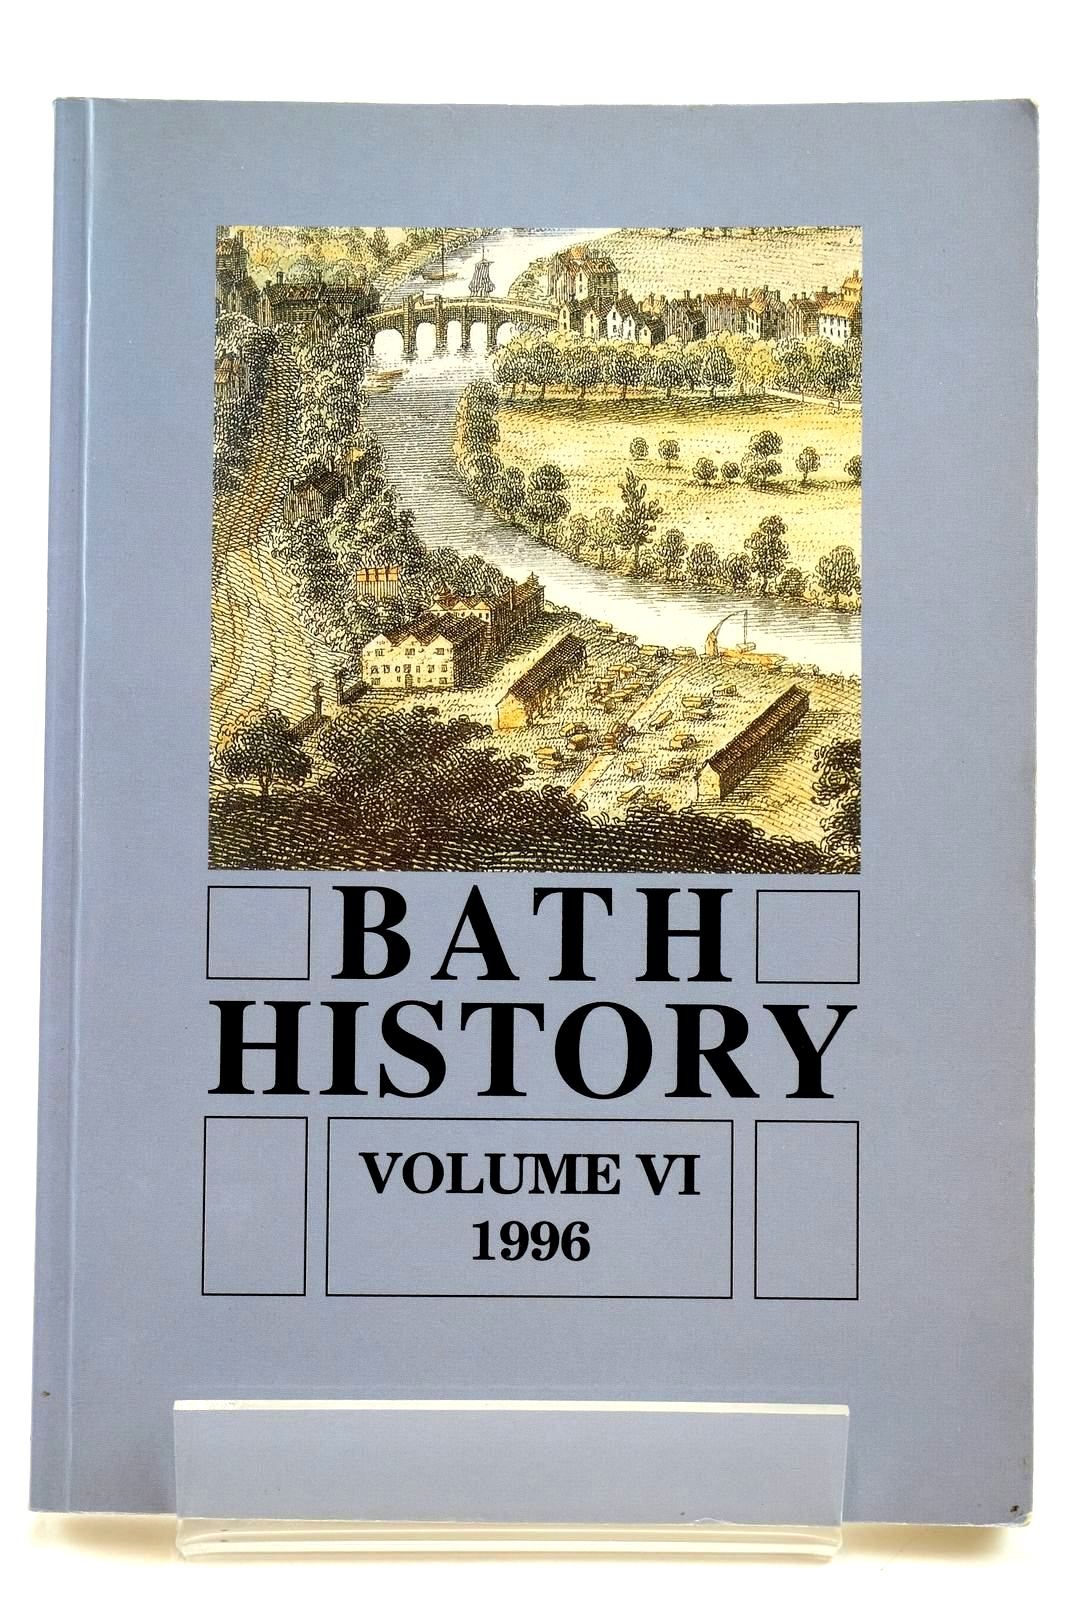 Photo of BATH HISTORY VOLUME VI written by Buchanan, Brenda J. published by Millstream Books (STOCK CODE: 2131972)  for sale by Stella & Rose's Books